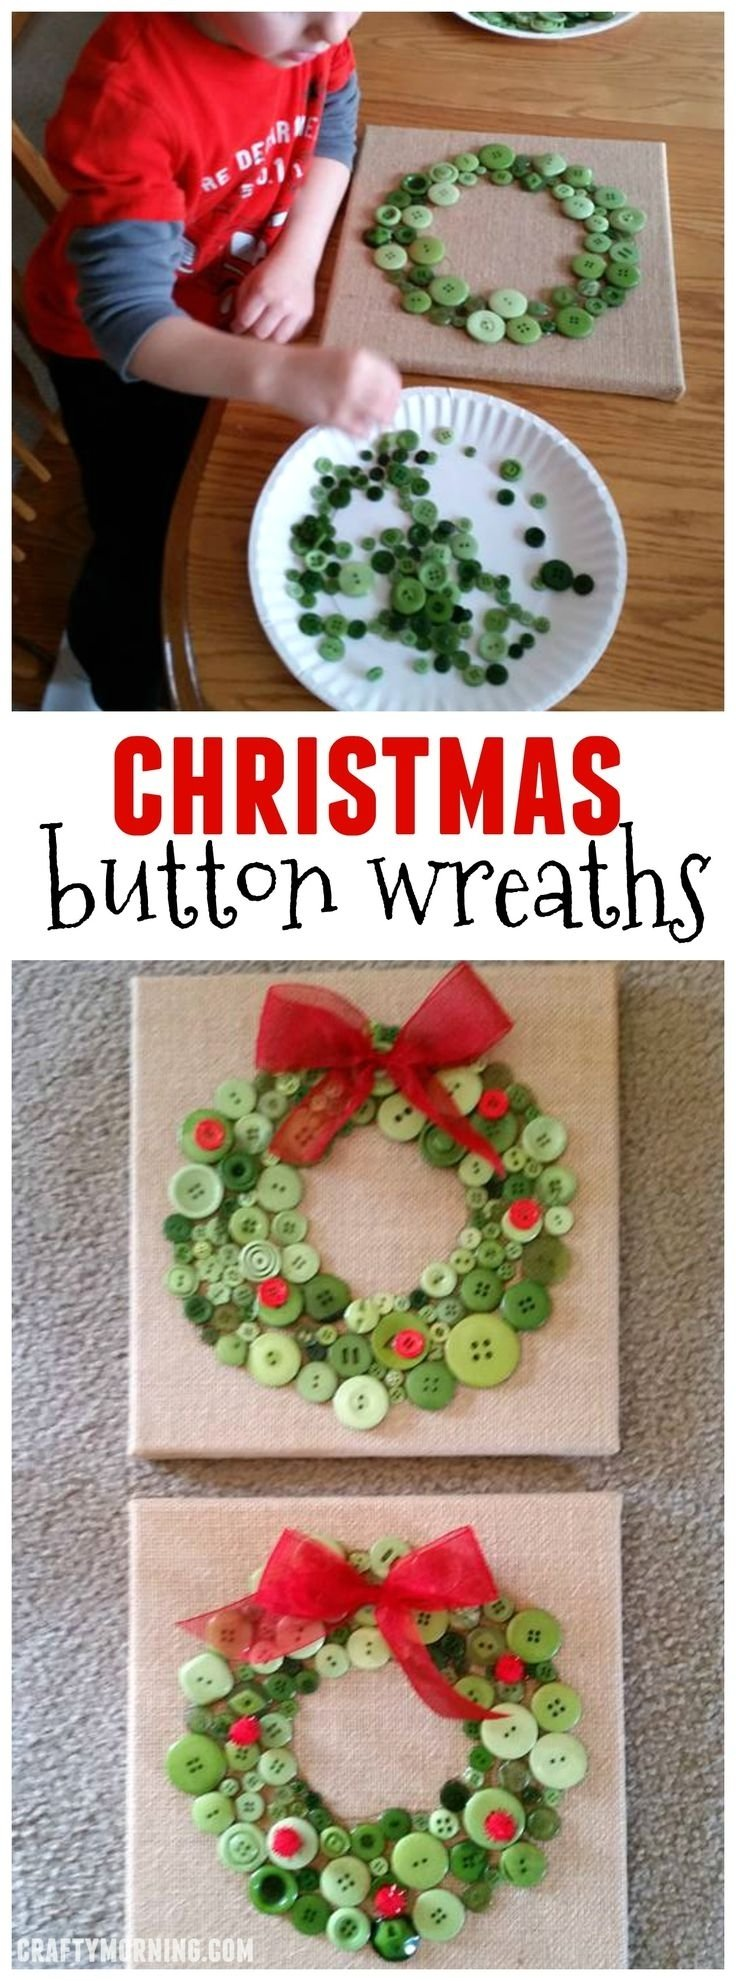 10 Fabulous Christmas Craft Gift Ideas For Kids 62 best gift ideas images on pinterest christmas presents hand 2021